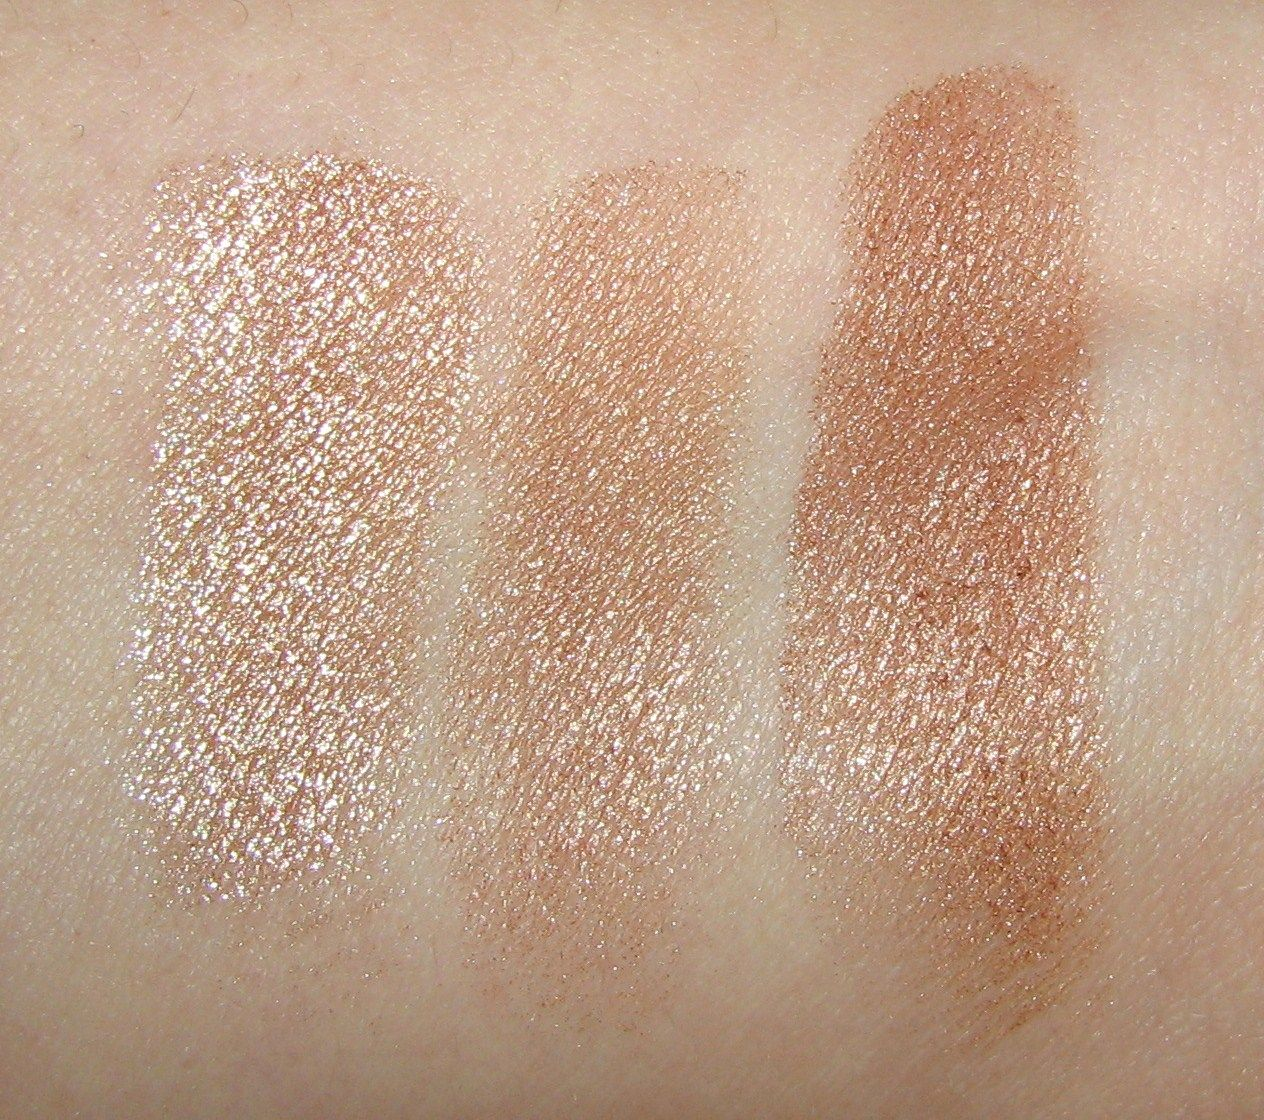 Lorac TANtalize Baked Bronzer swatches Makeup obsession